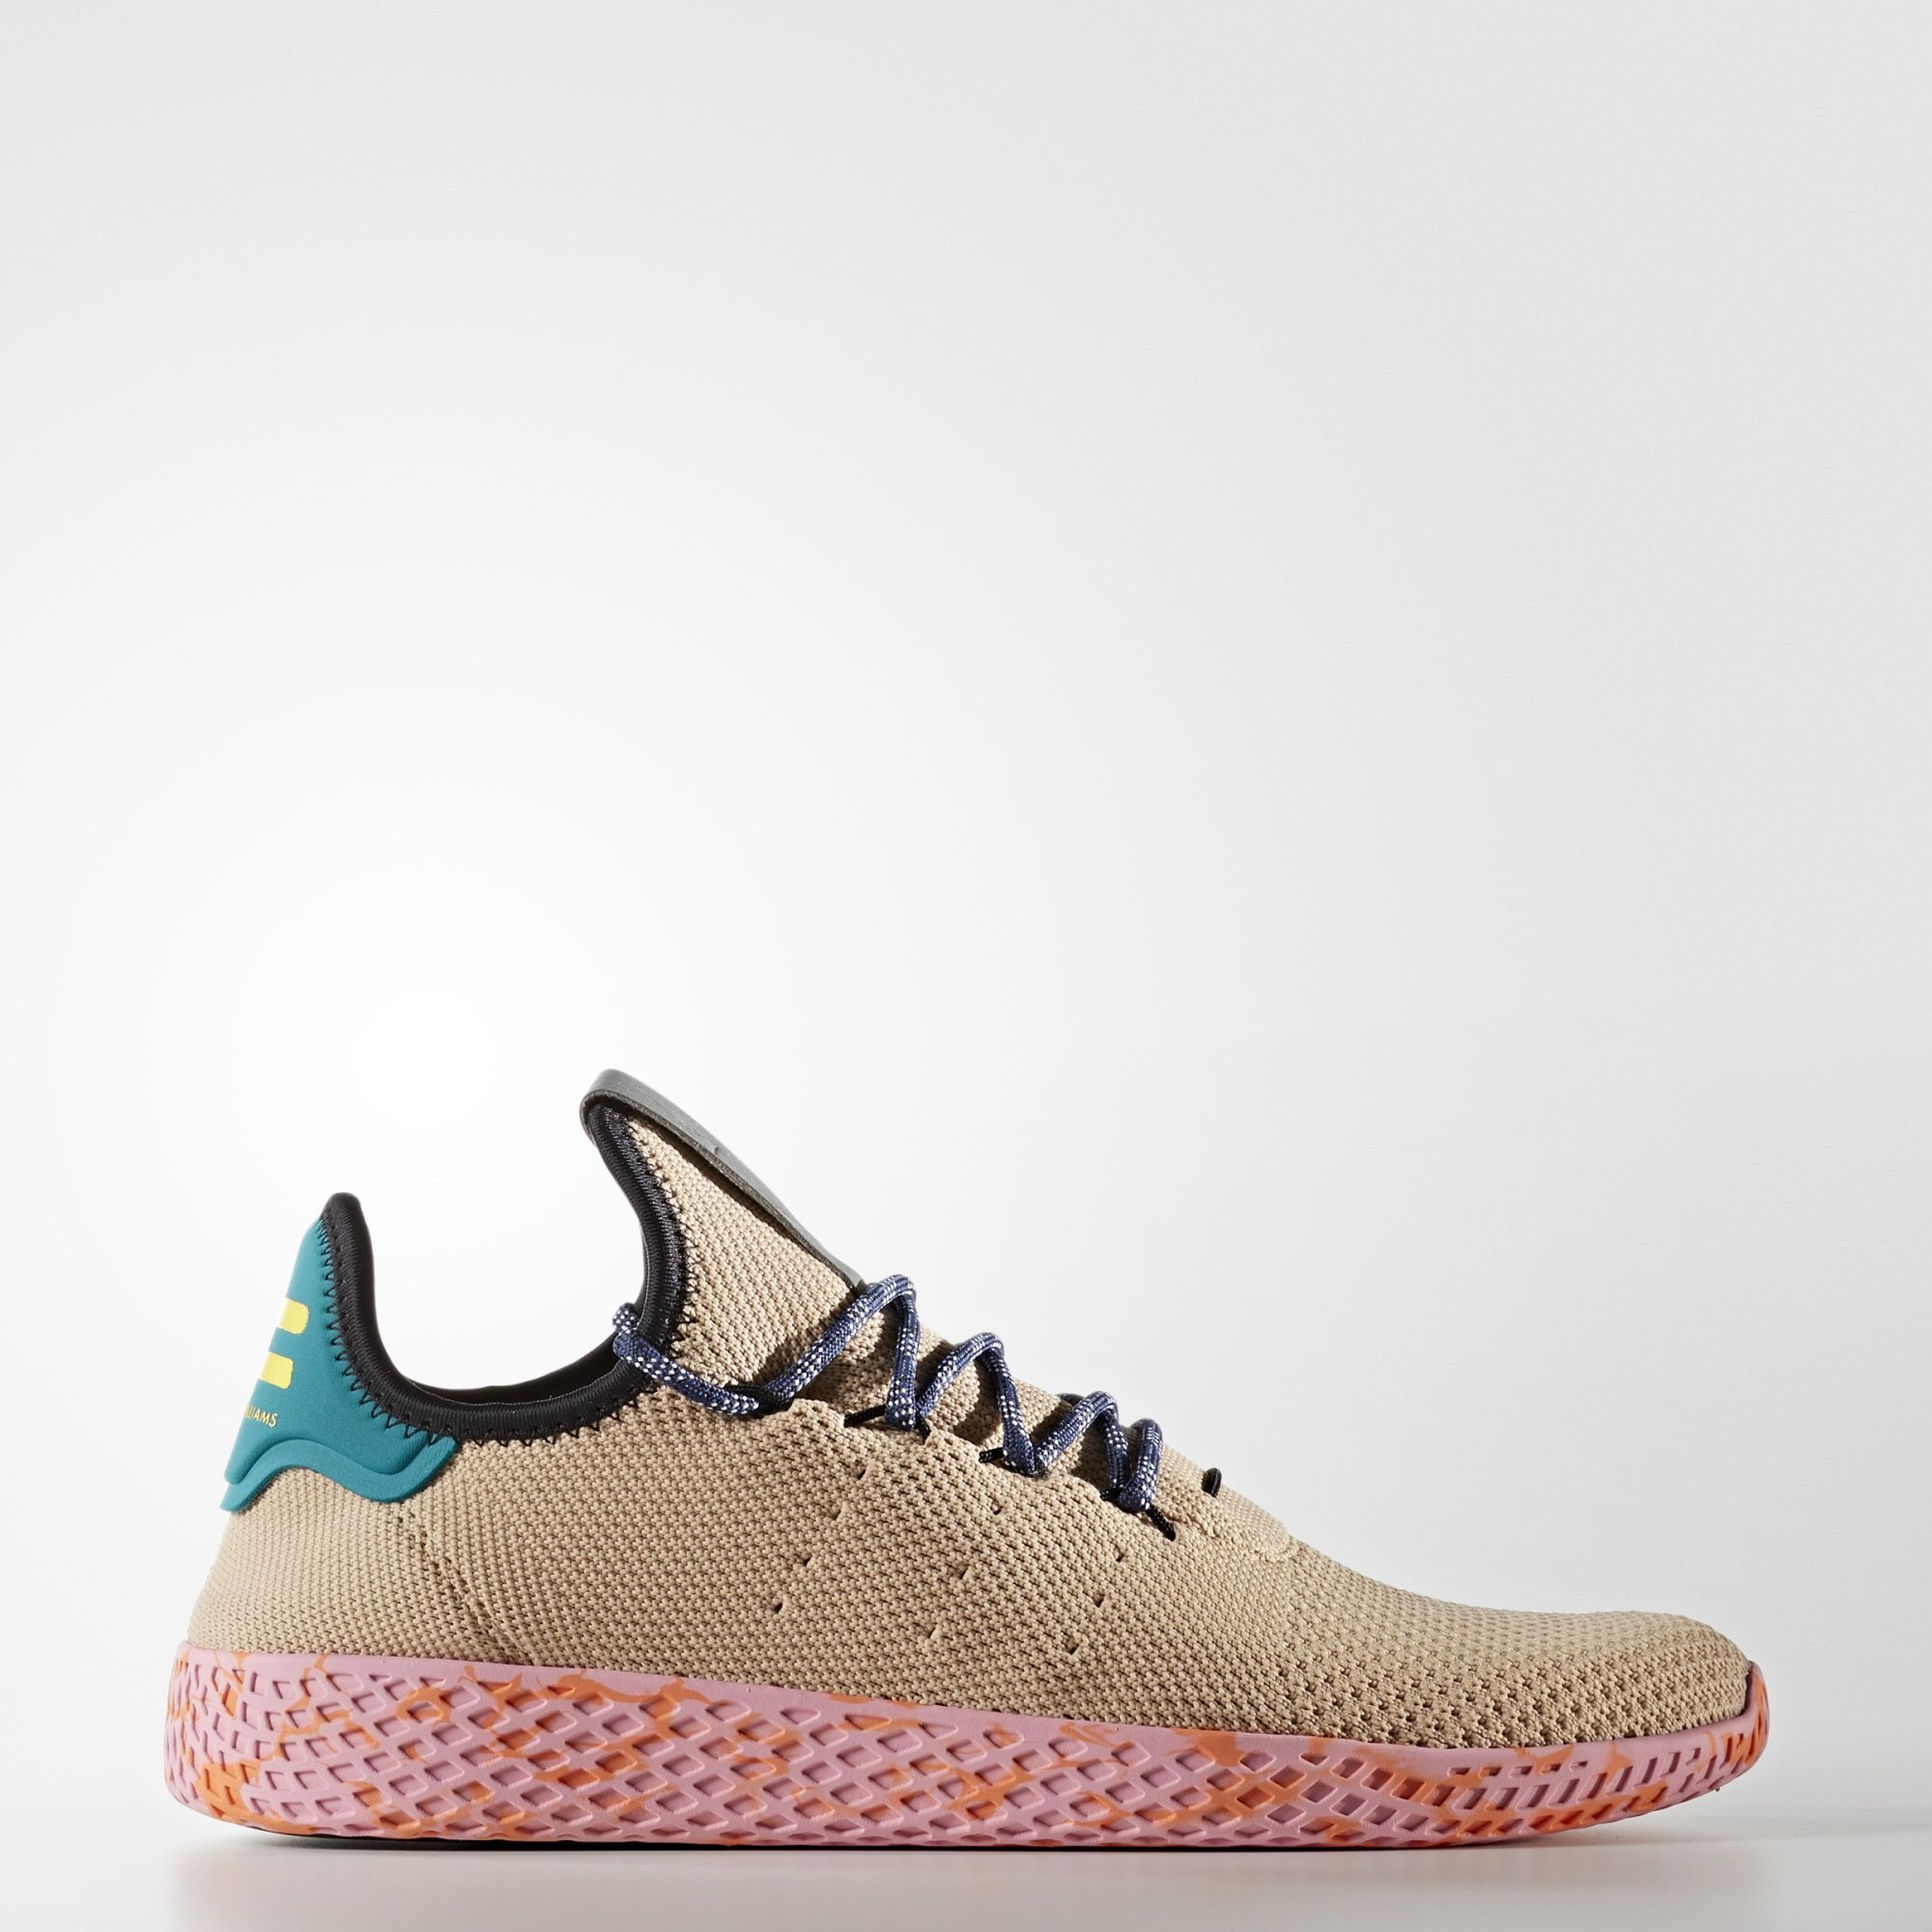 adidas - Pharrell Williams Tennis Hu Shoes  0ca3229f7da